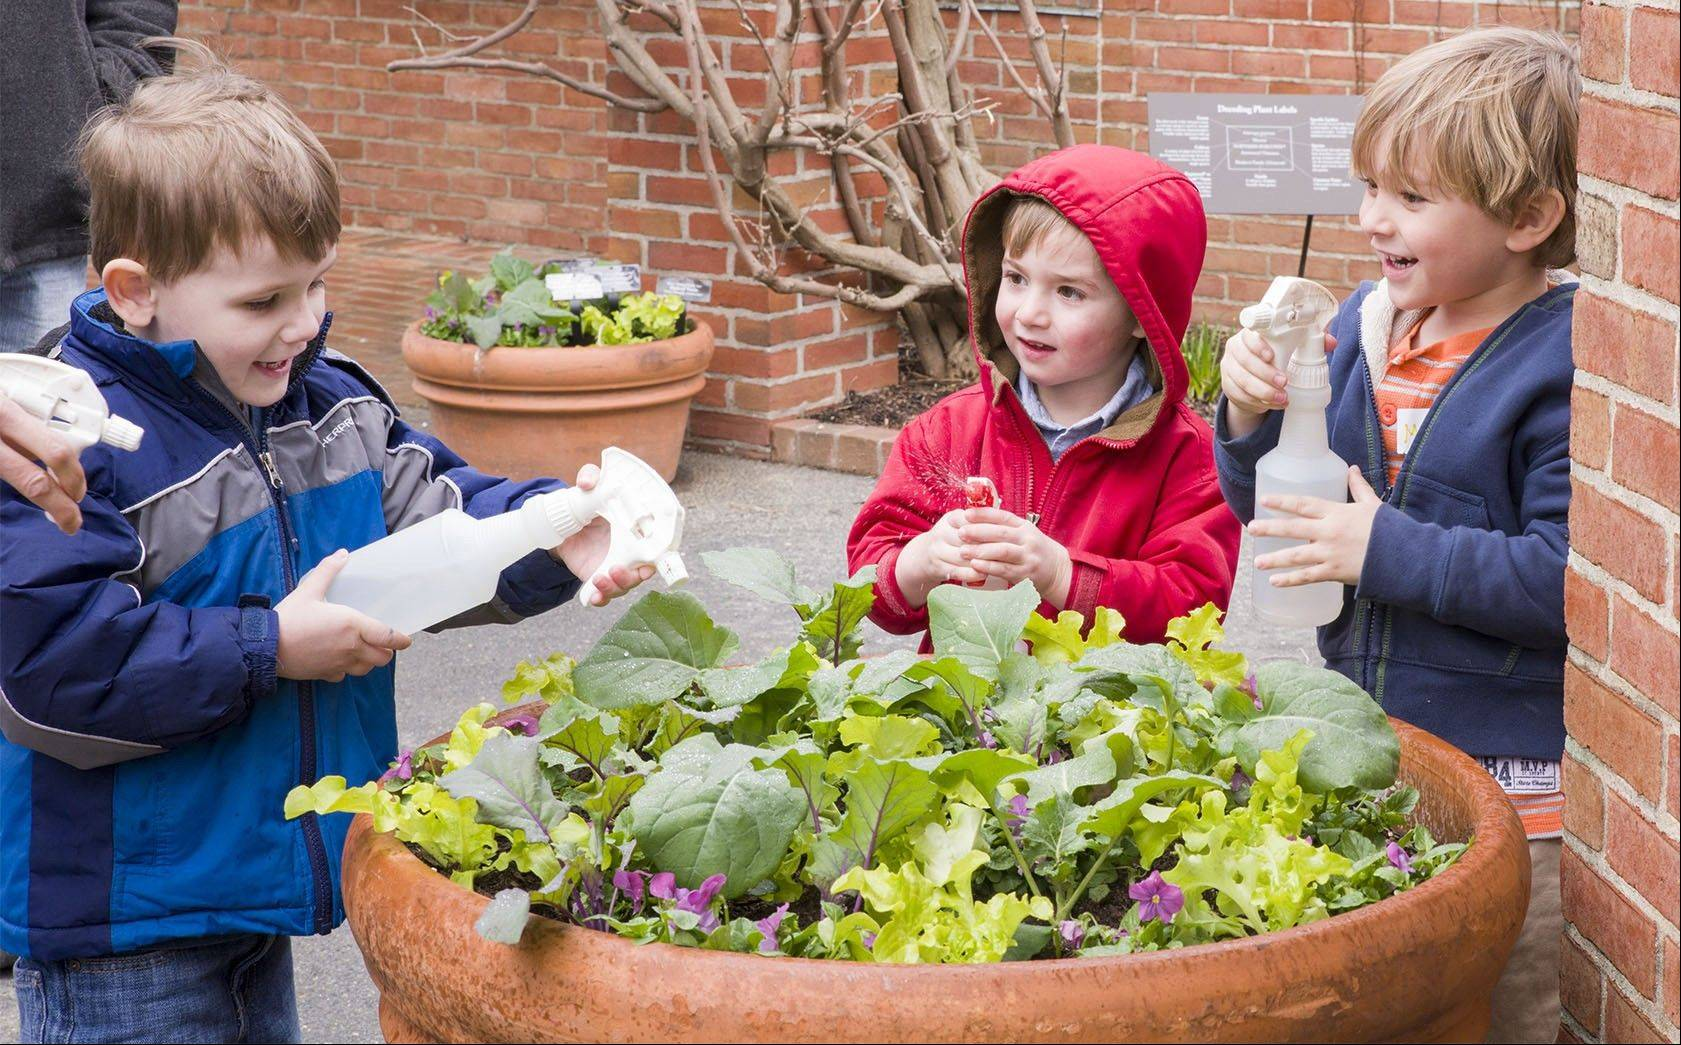 Children can water the spring vegetable container gardens in the Regenstein Fruit & Vegetable Garden at the Chicago Botanic Garden.